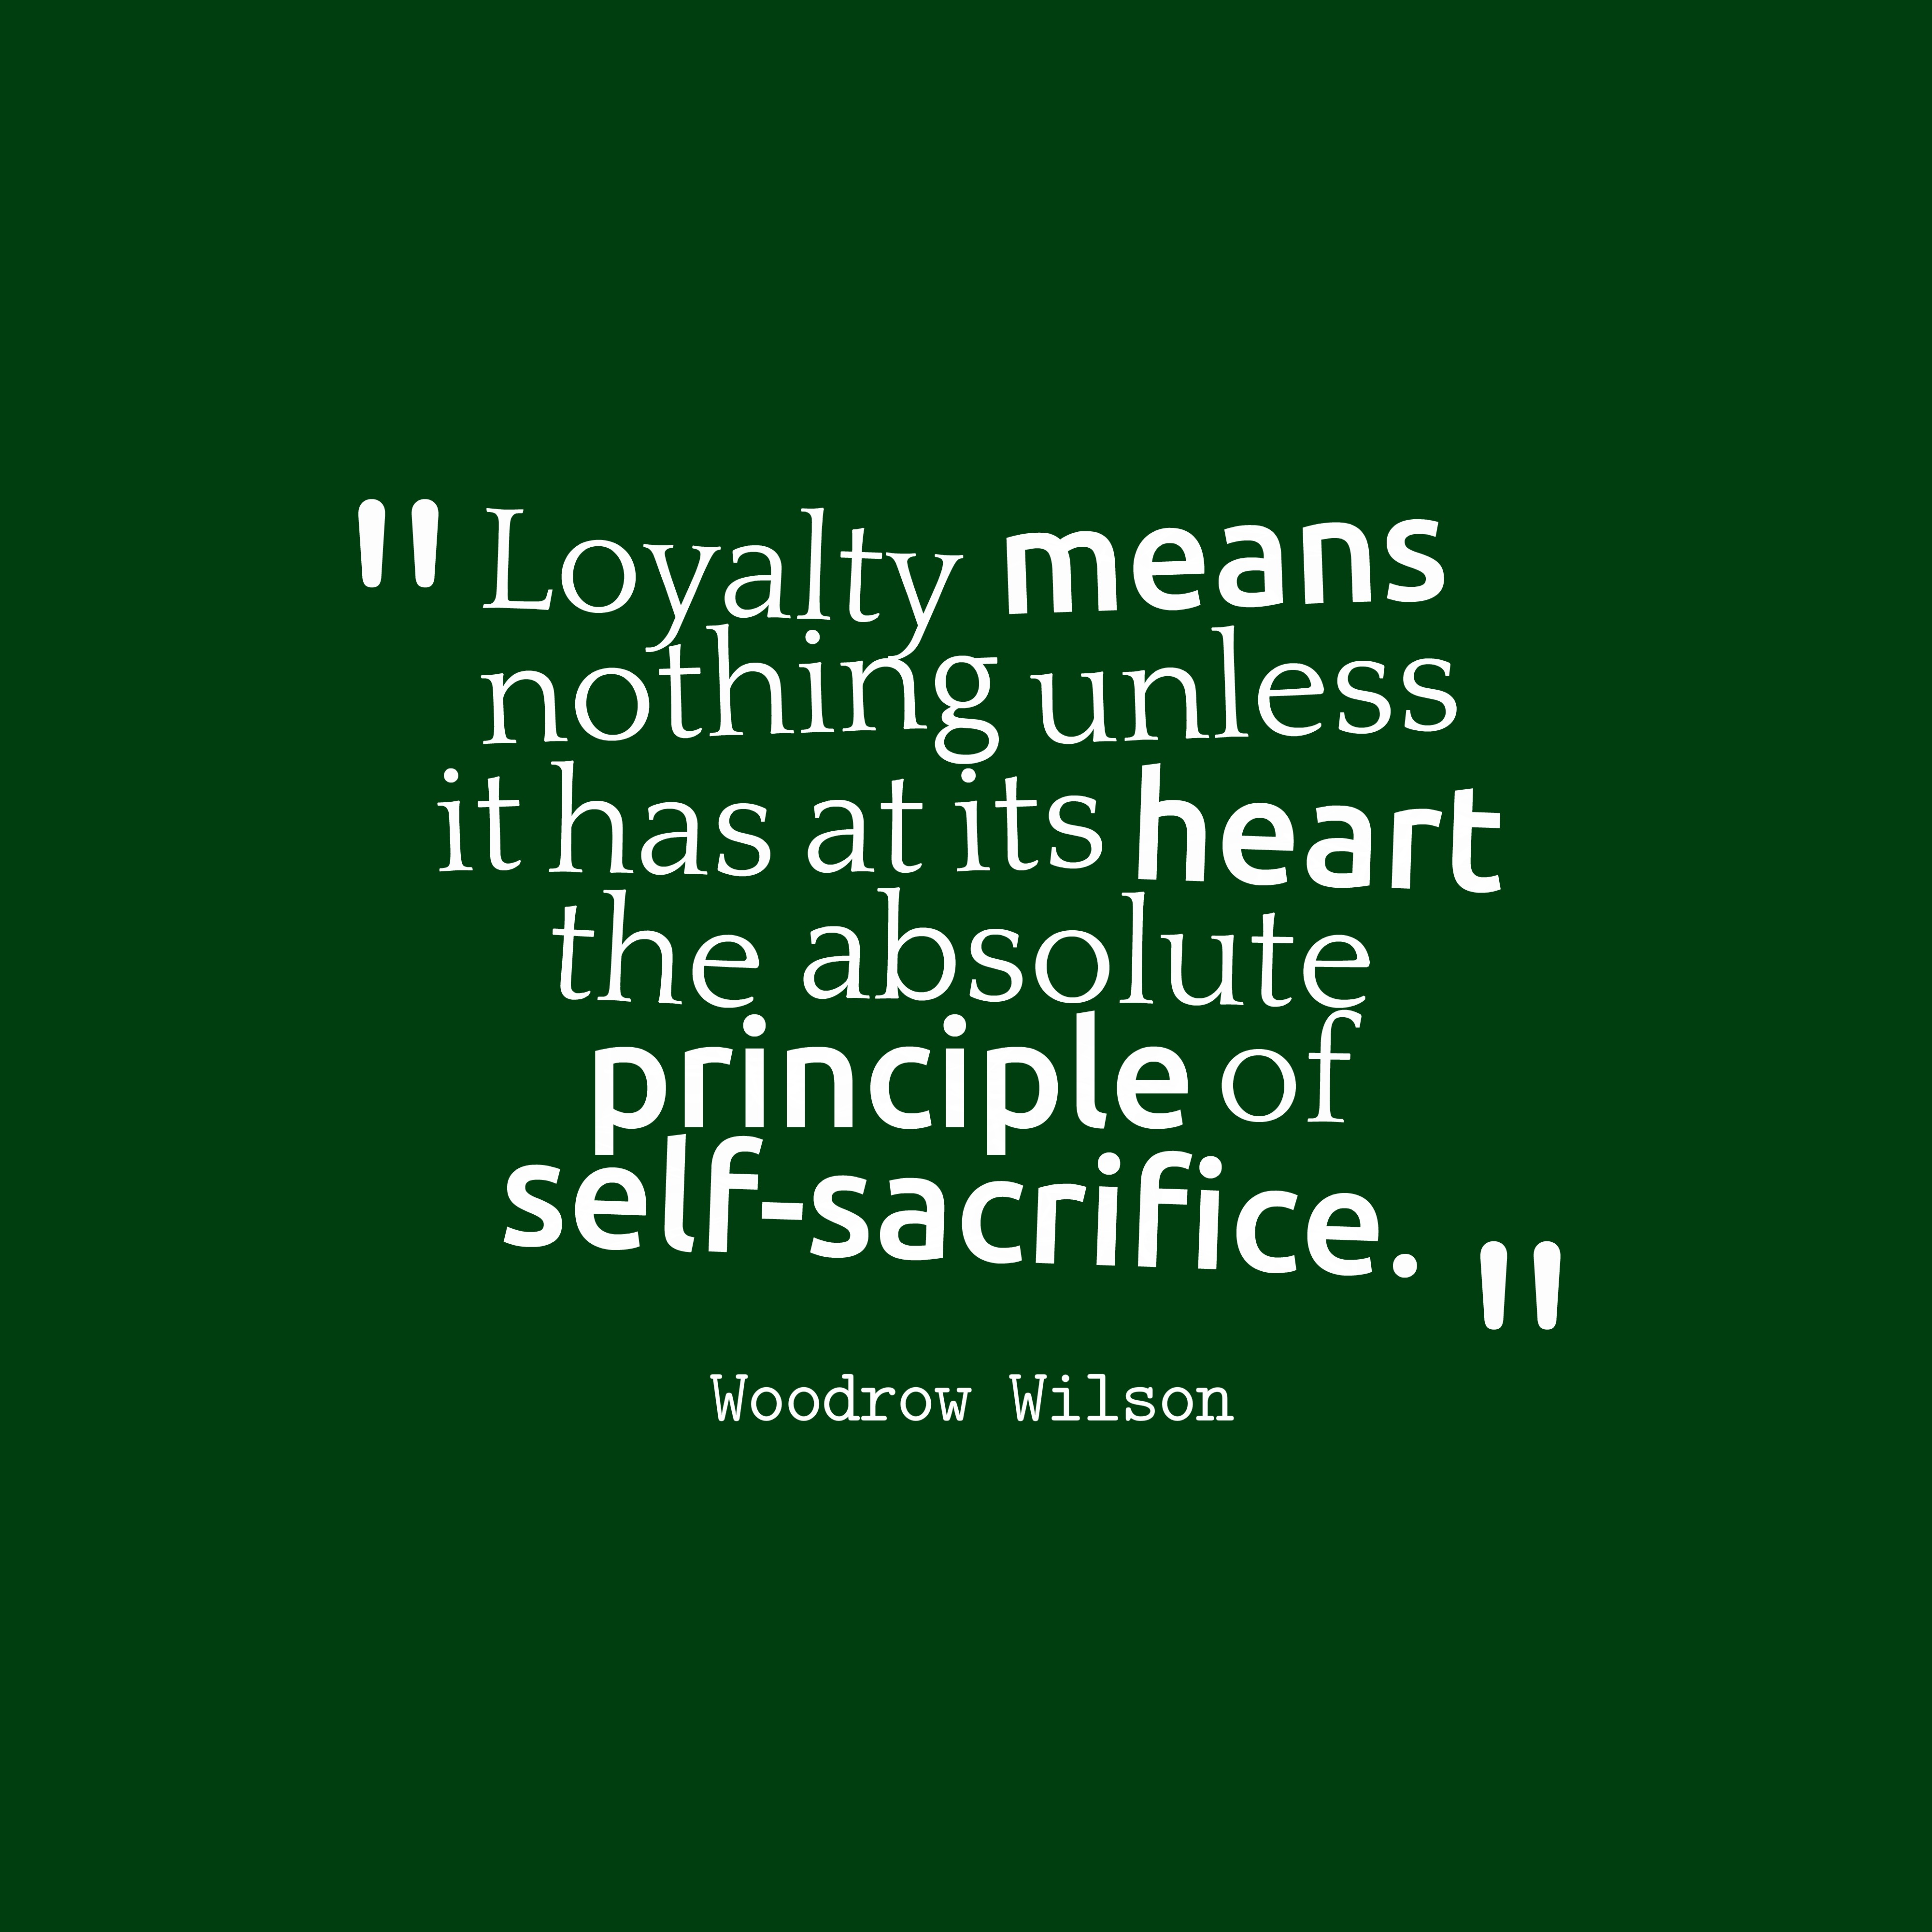 Quotes Image Of Loyalty Quotes Sacrifice Quotes Woodrow Wilson Quotes